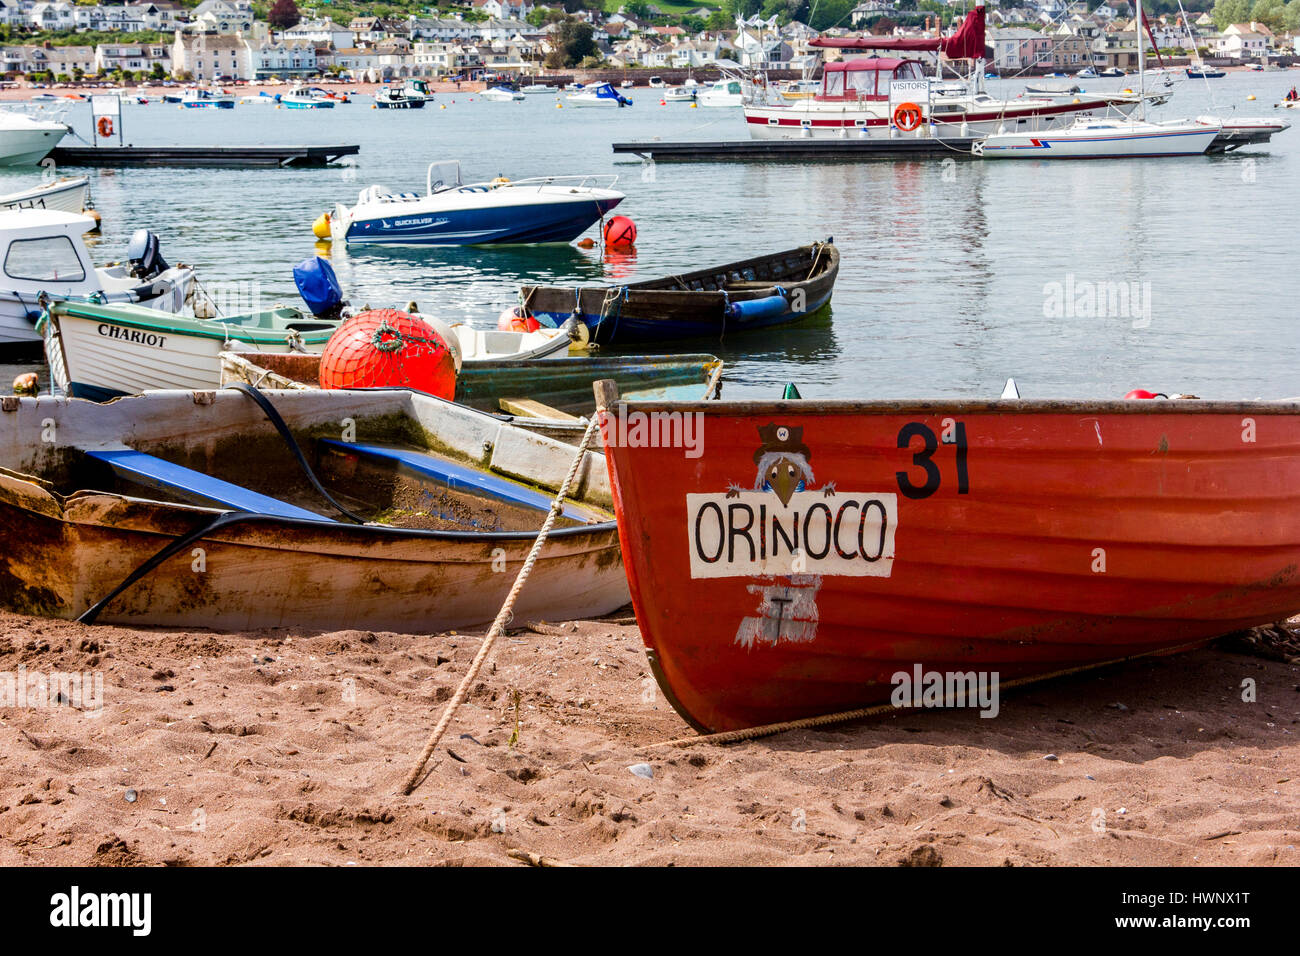 'Orinoco' and Boats on The Estuary Beach at Teignmouth With Boats Moored in the Teign Estuary, Teignmouth, Devon, Stock Photo